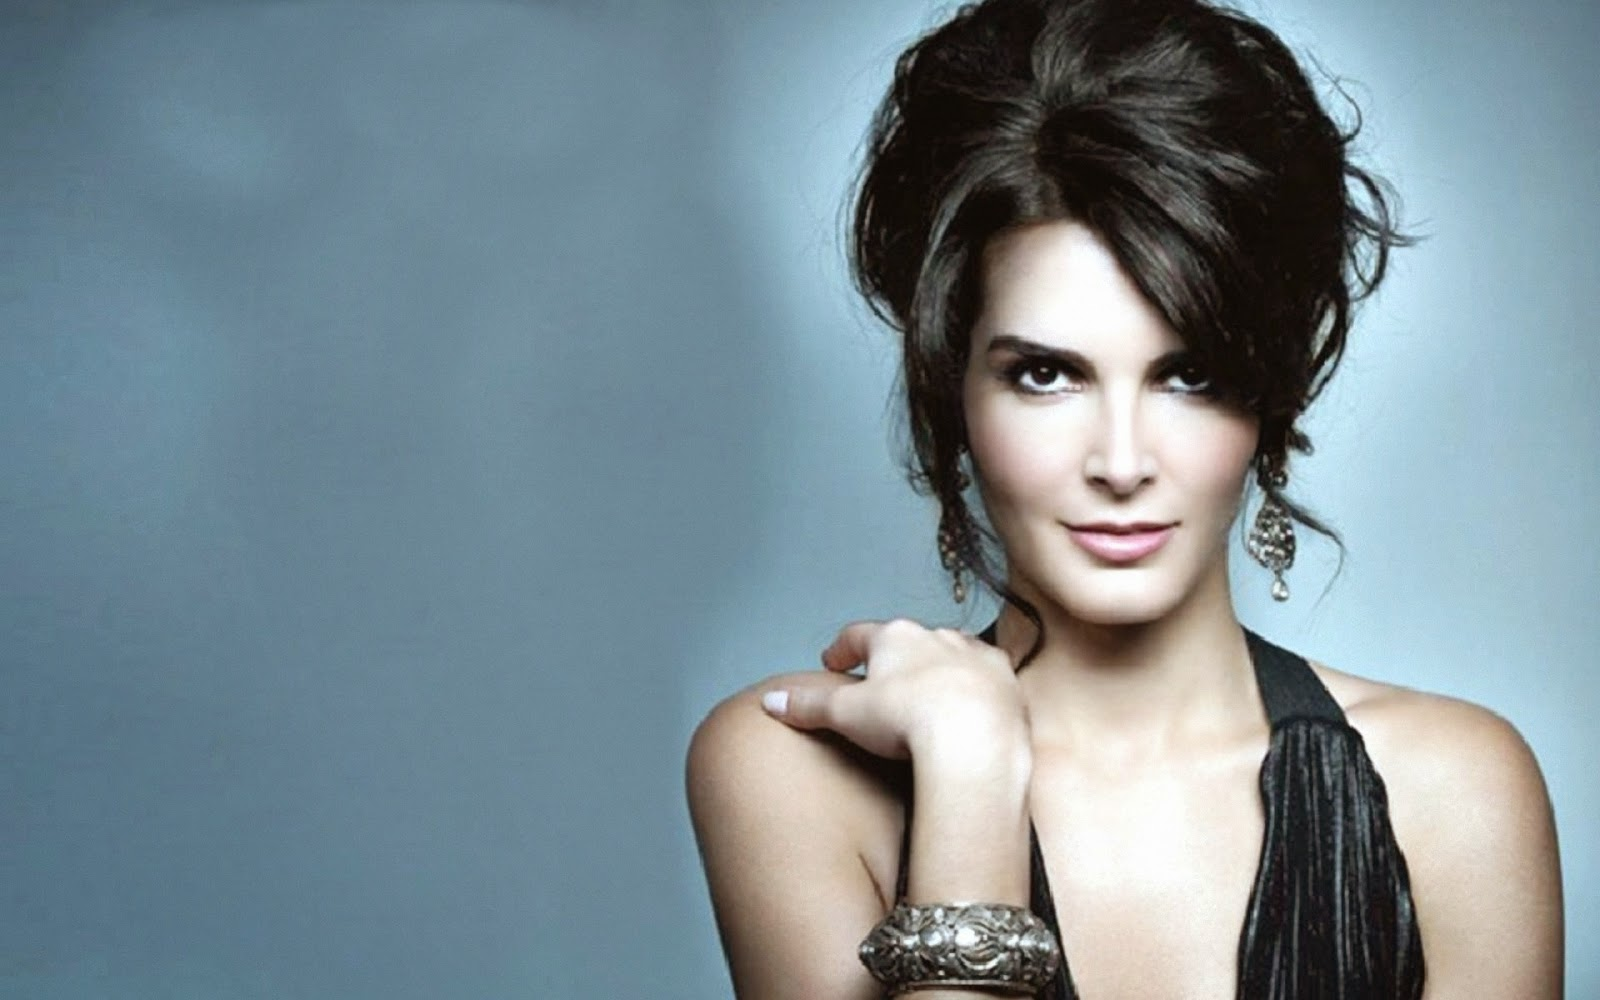 celebrity hd wallpapers angie harmon fashion model pics